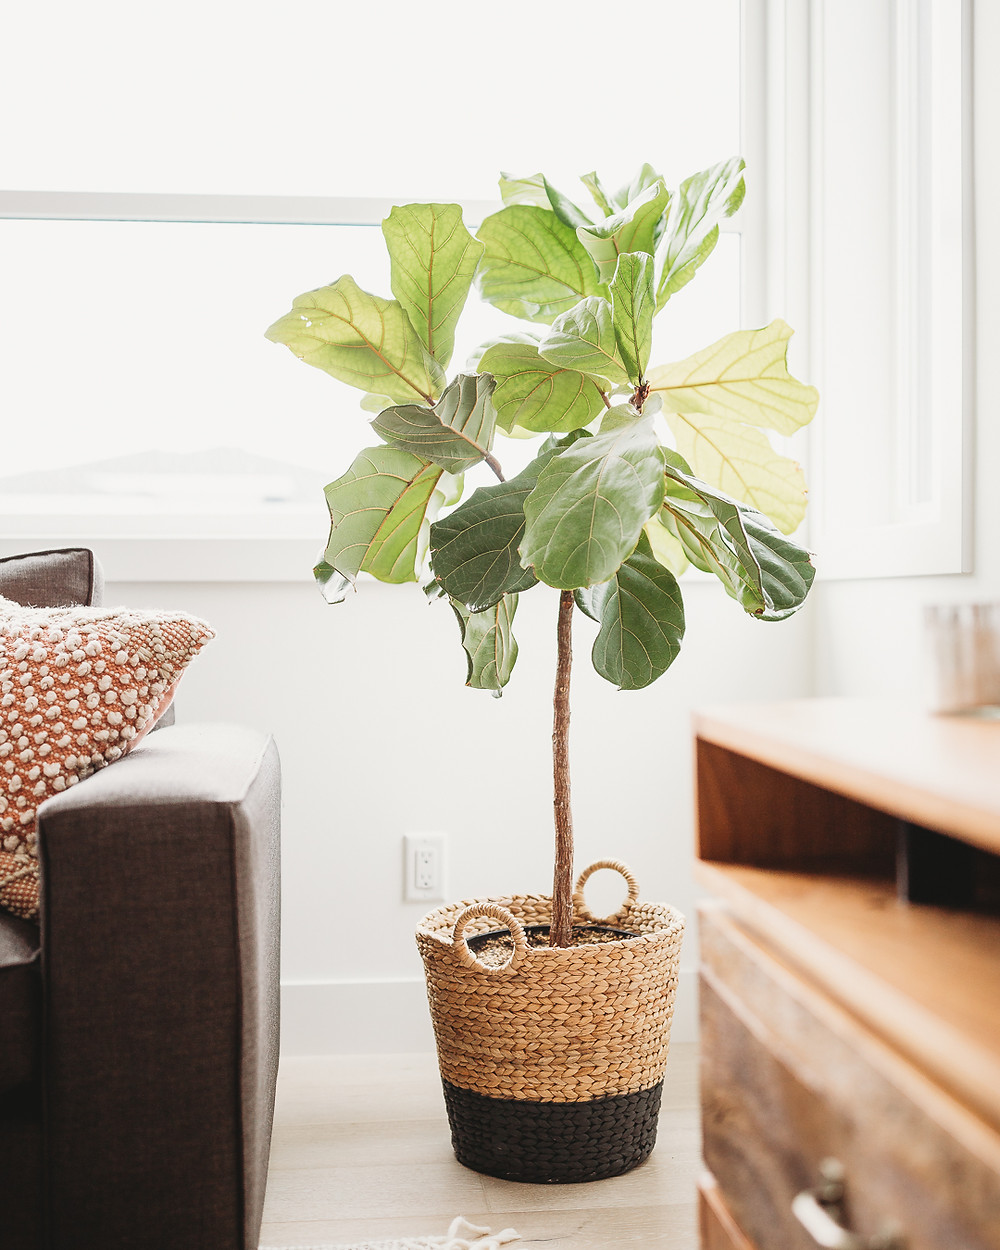 Natural light fiddle leaf fig in woven basket with black accent wood console and grey sofa